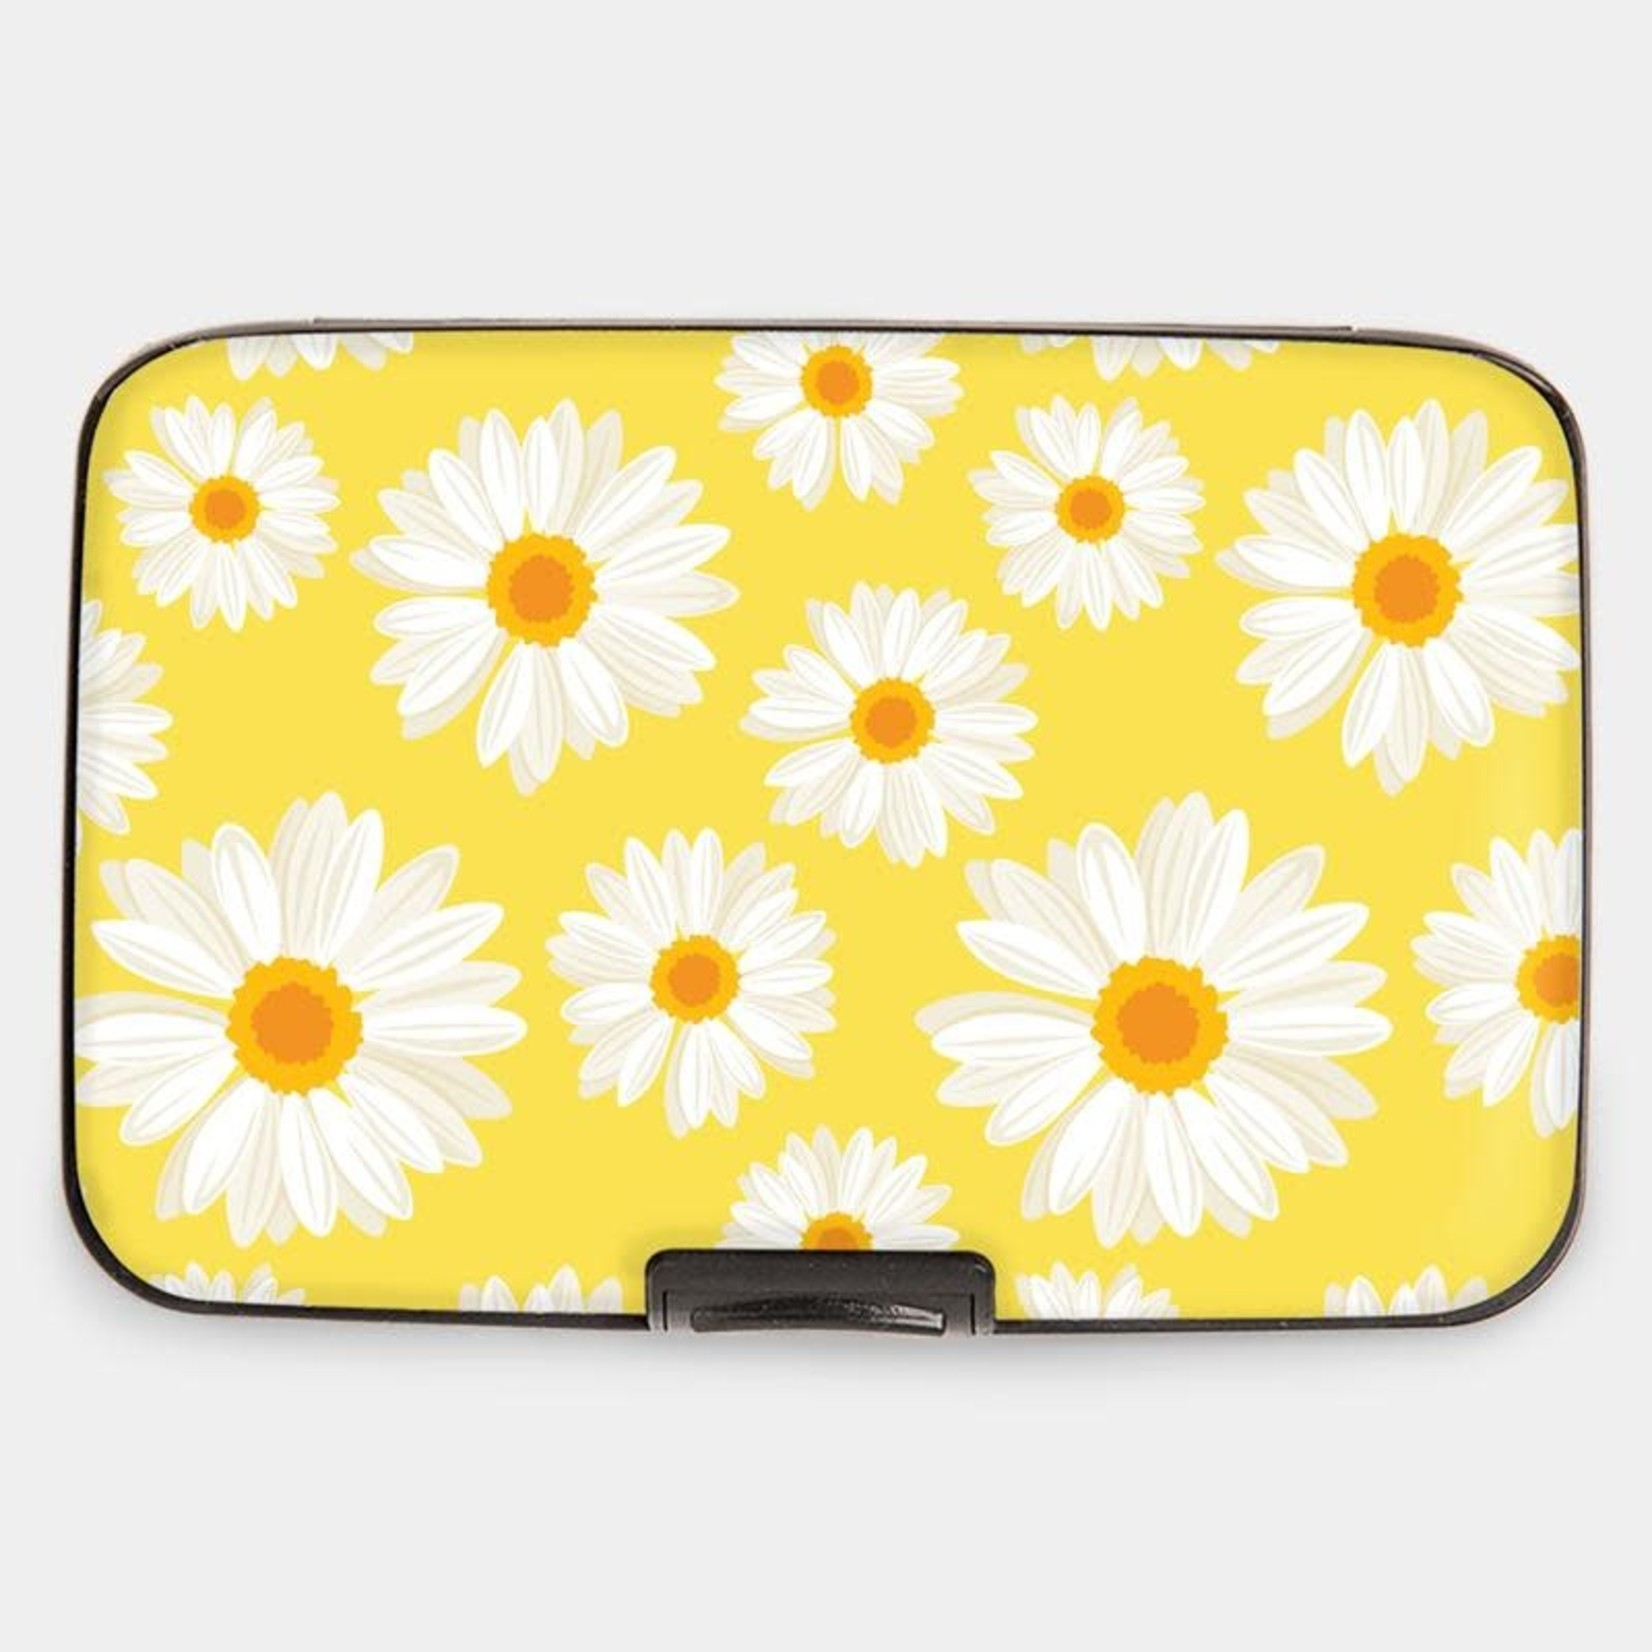 Monarque Armored Wallet - Yellow Daisies